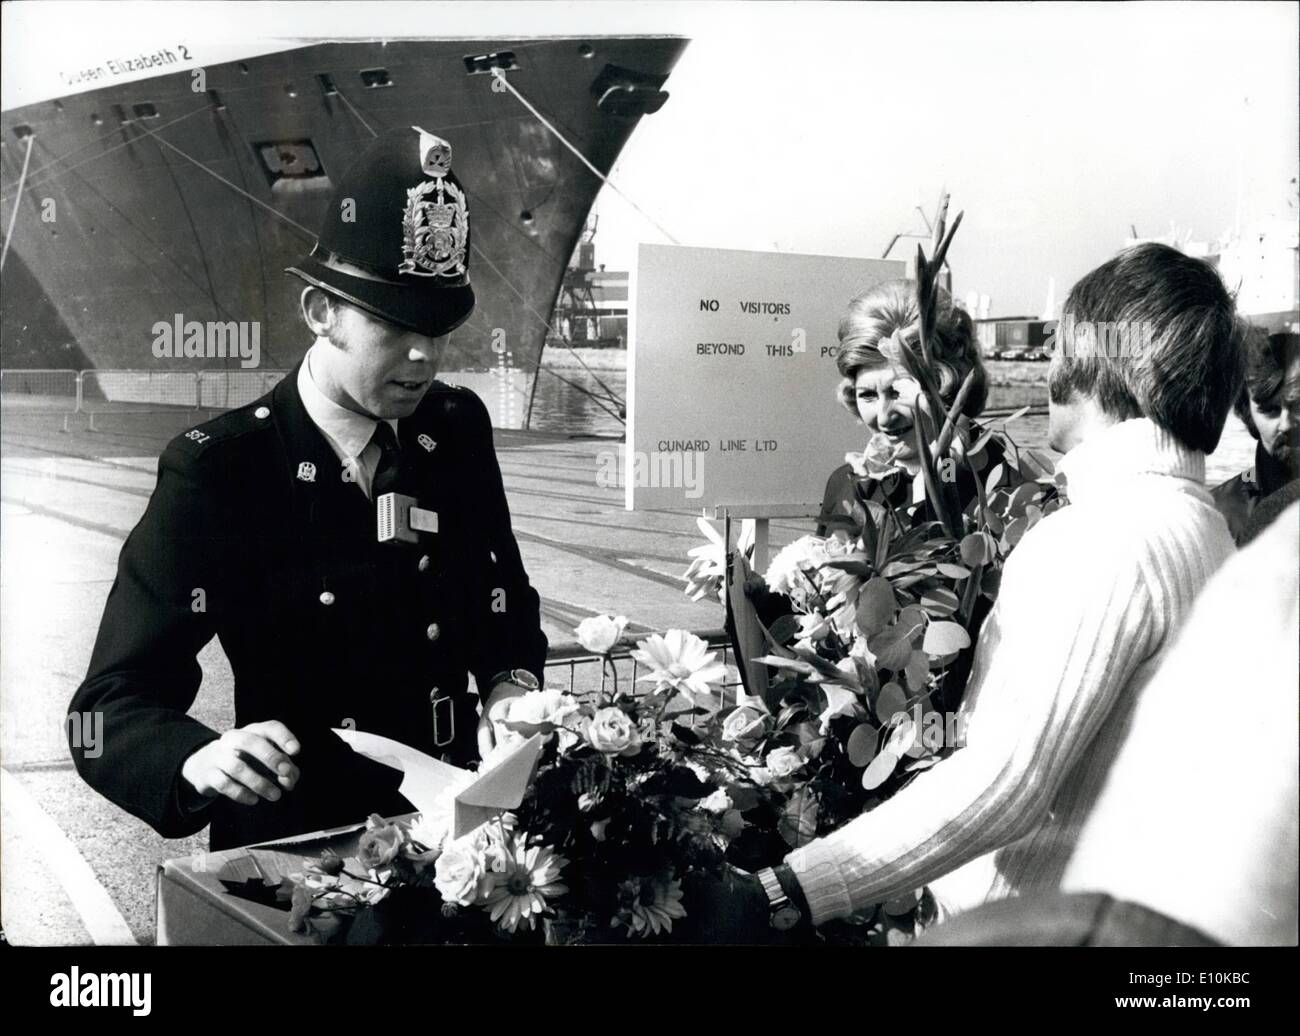 Apr. 04, 1973 - SECURITY PRECAUTIONS WHEN QE2 LEAVES FOR ISRAEL.. Massive security precautions were mounted yesterday when the liner Queen Elizabeth 2 left Southampton with 580 passengers, most of them American Jews, for a cruise to Israel marking Passover and the 25th. anniversary of the Jewish State, Photo Shows:- Even flowers came under scrutiny at Southampton yesterday. - Stock Image